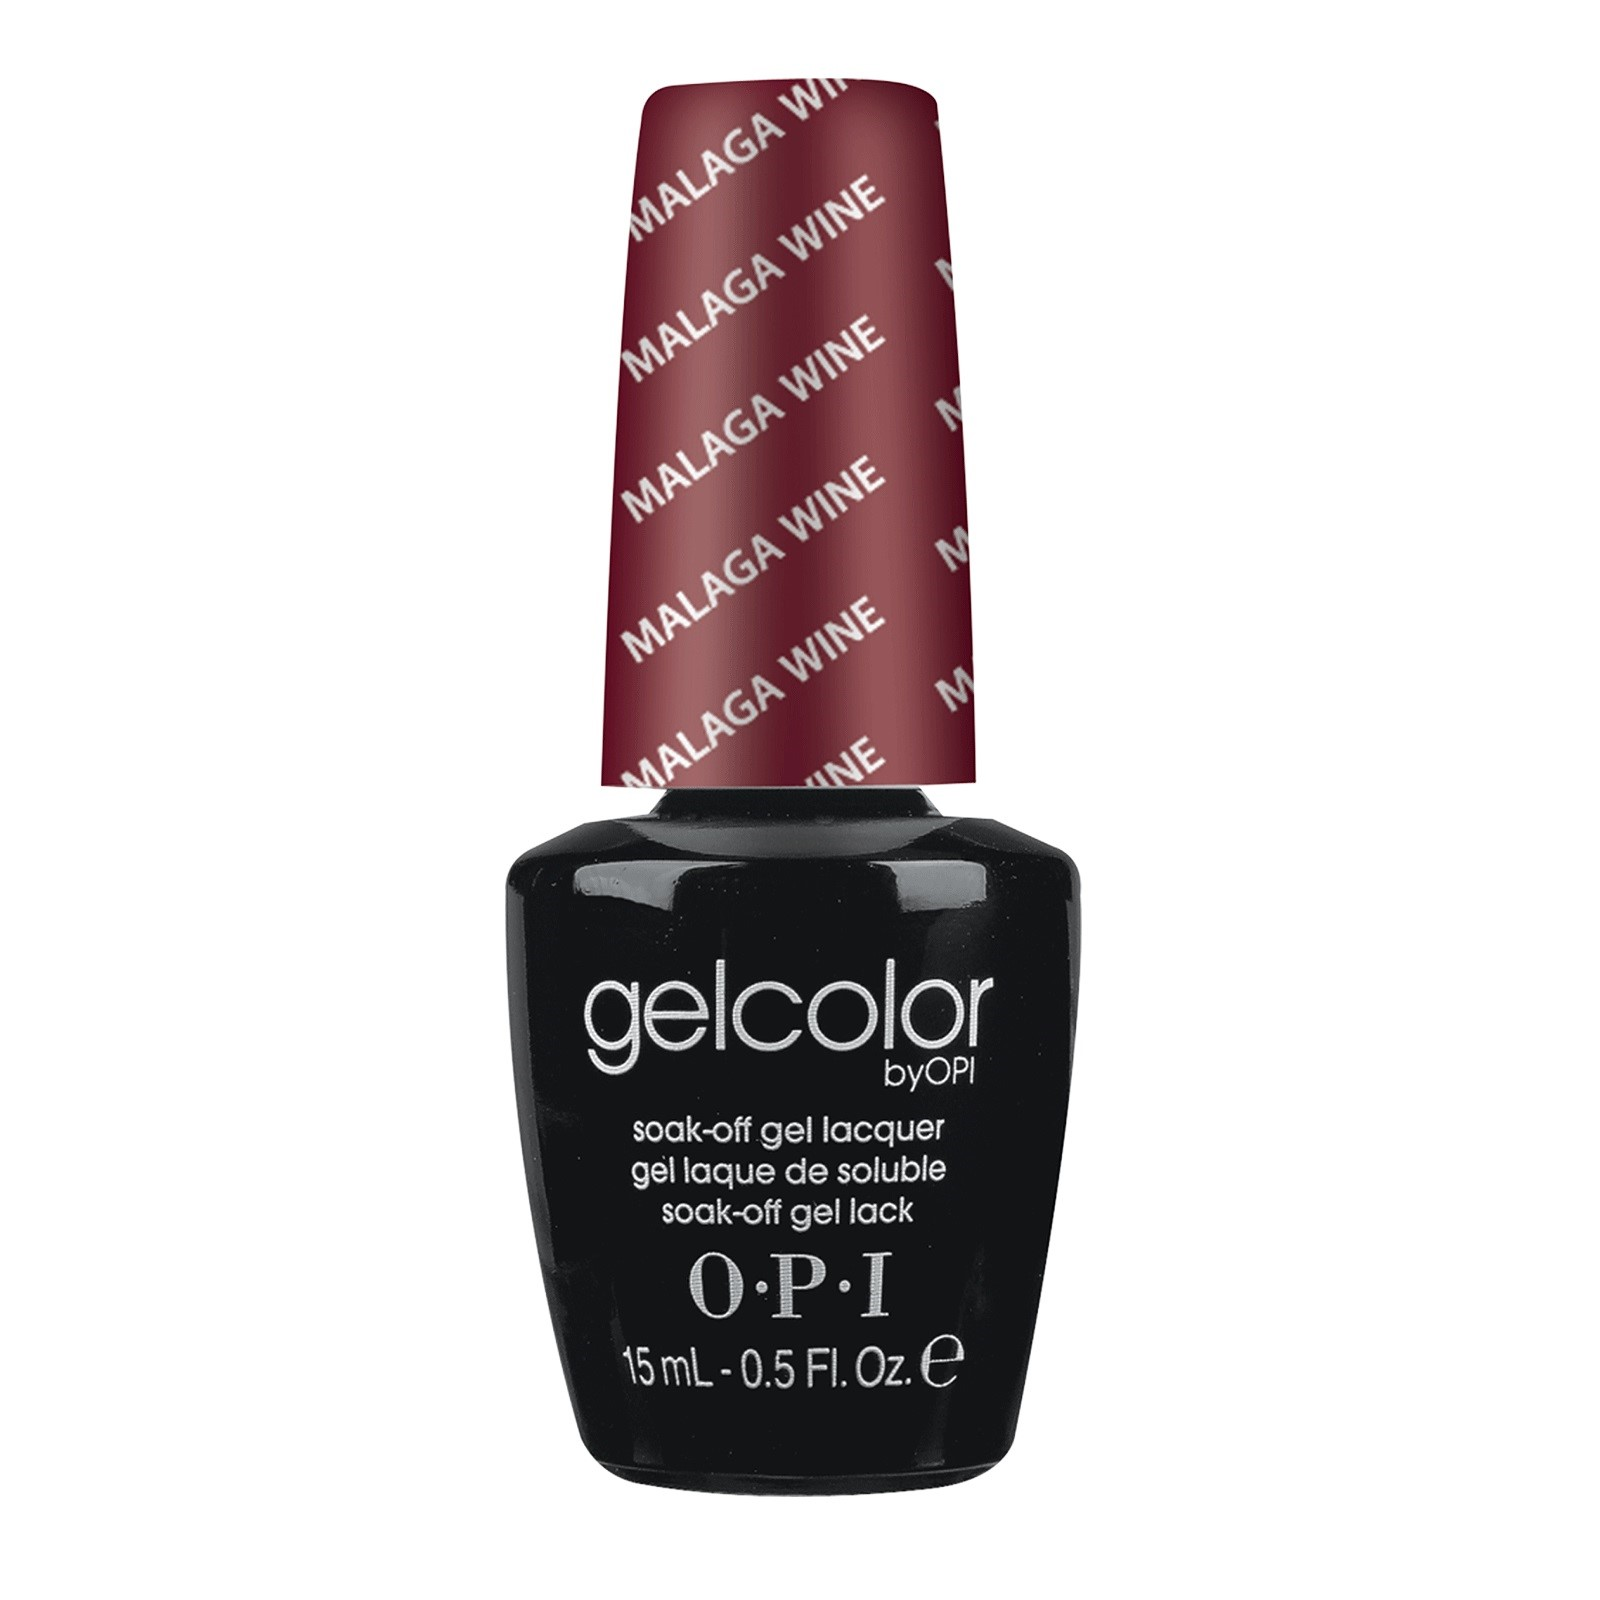 OPI GelColor, Malaga Wine